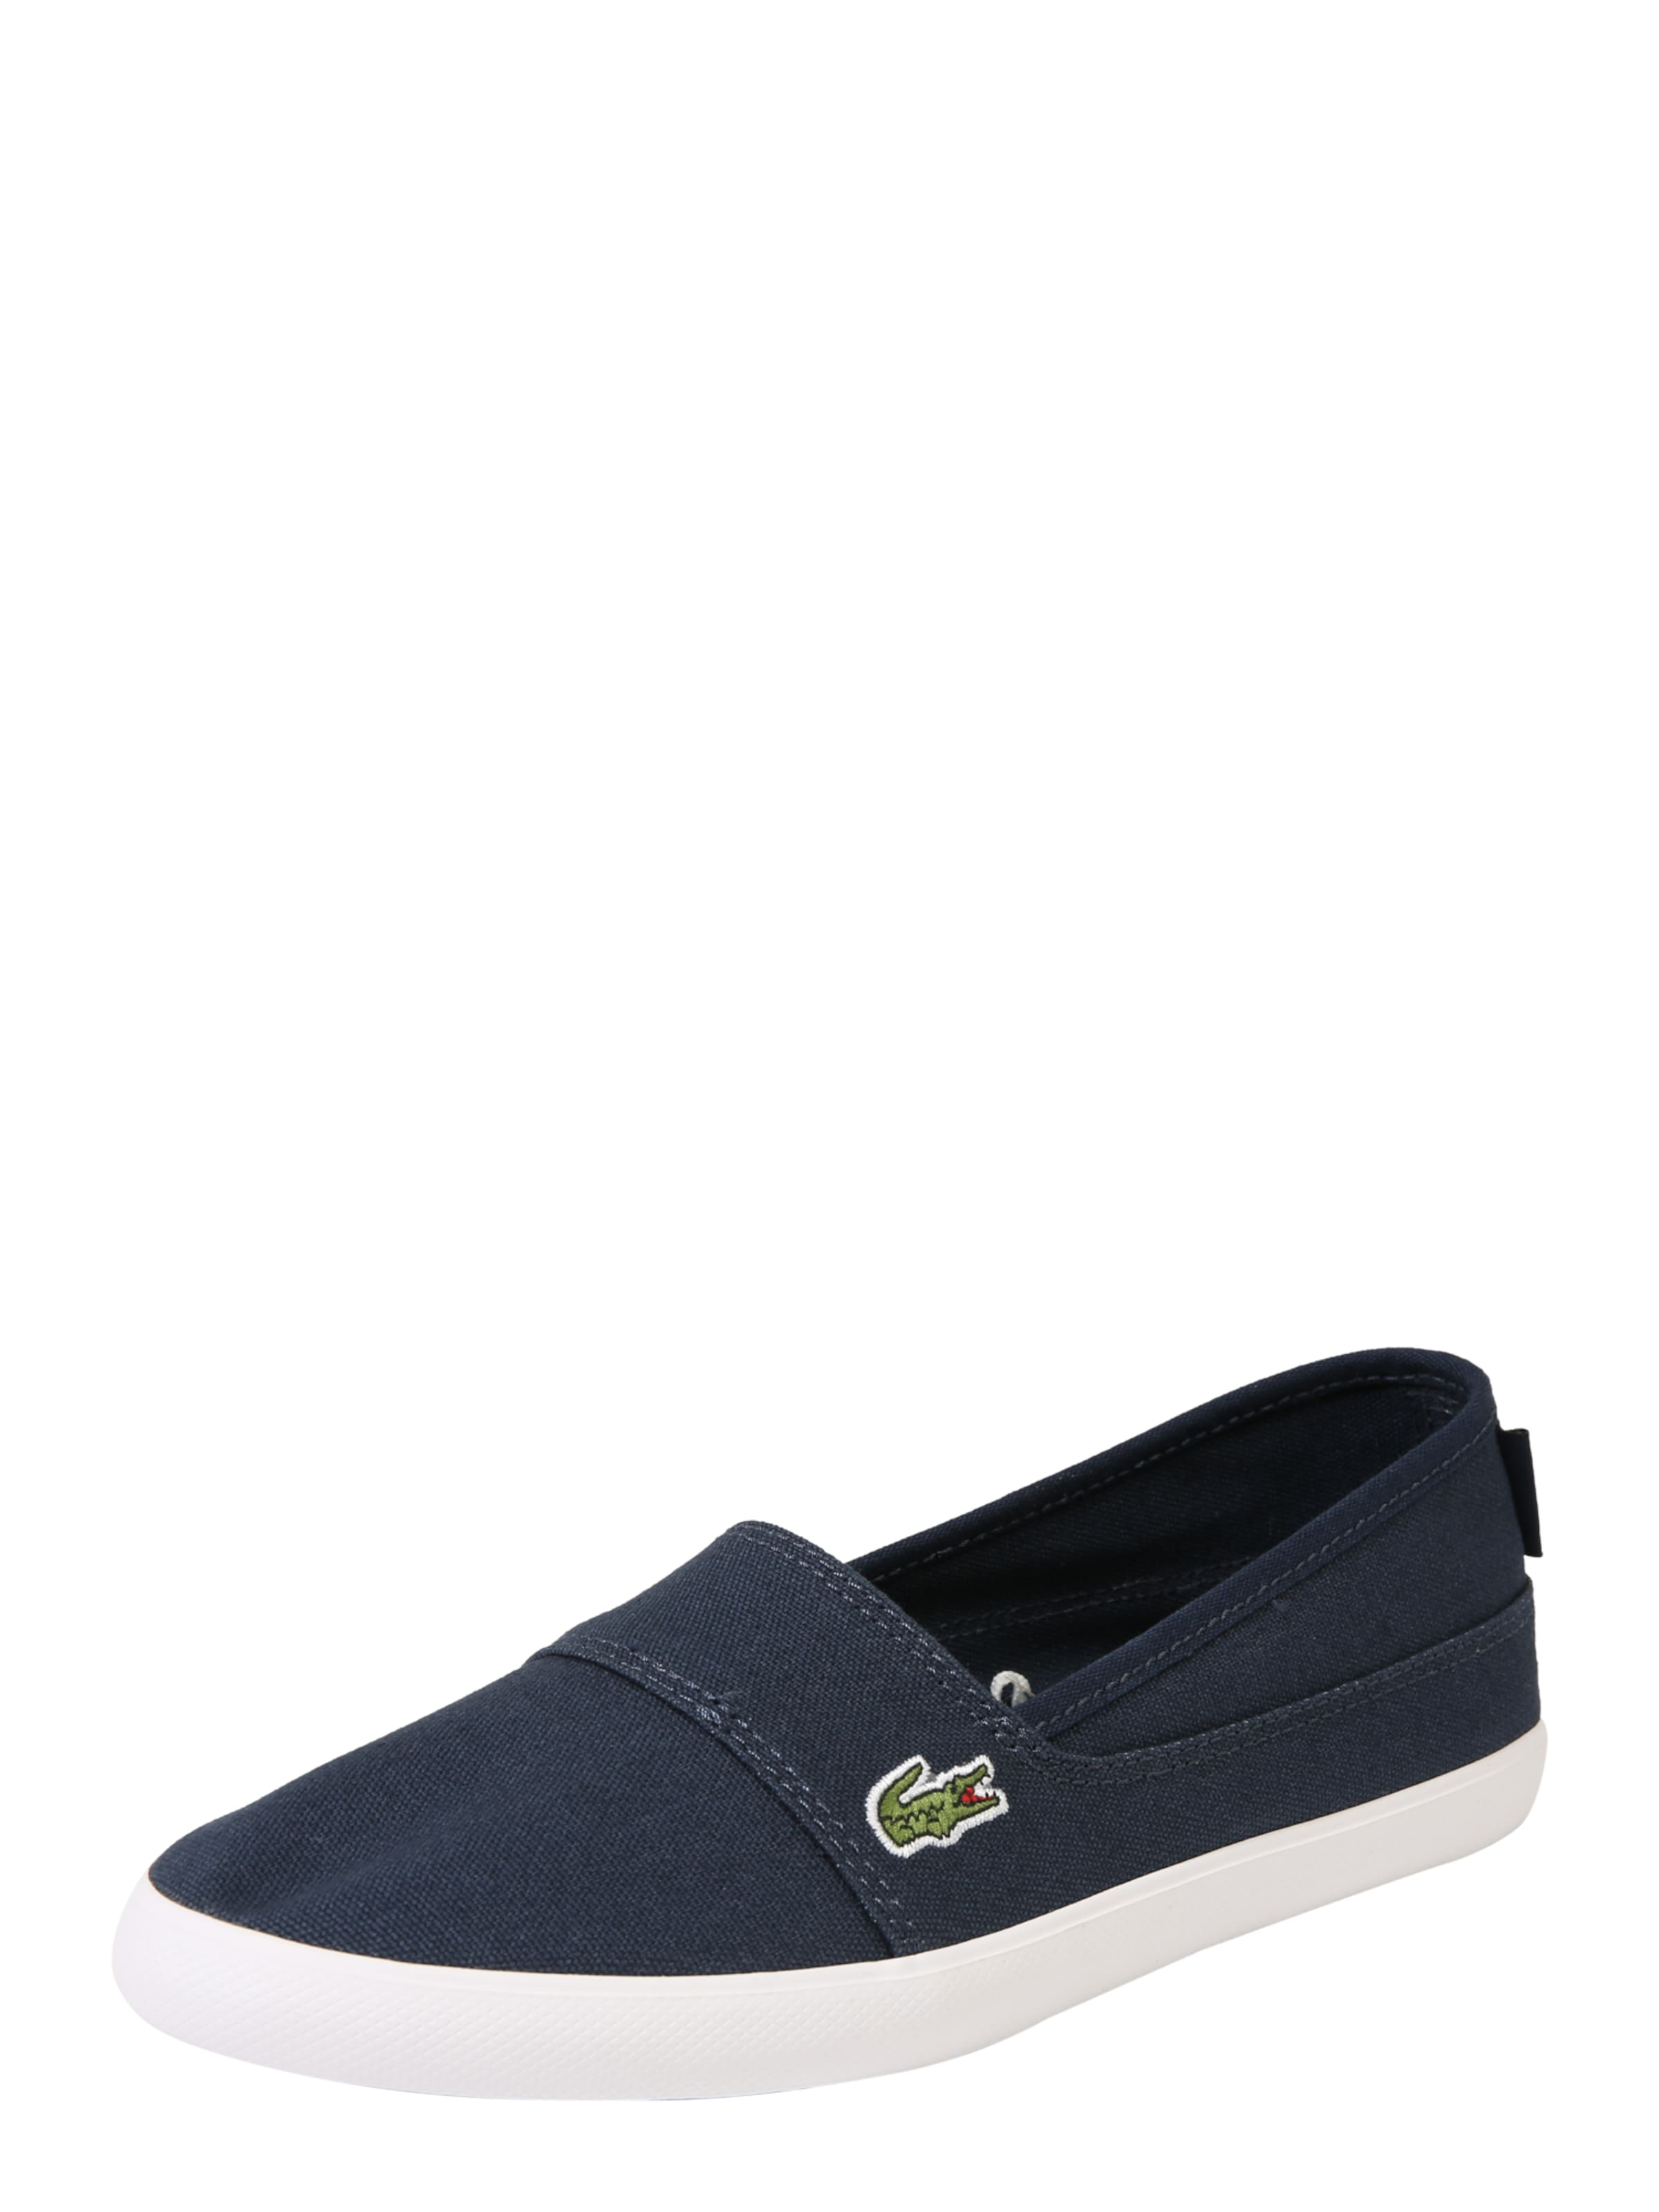 'marice' En Bleu Chaussons Lacoste Marine bfyIgvY67